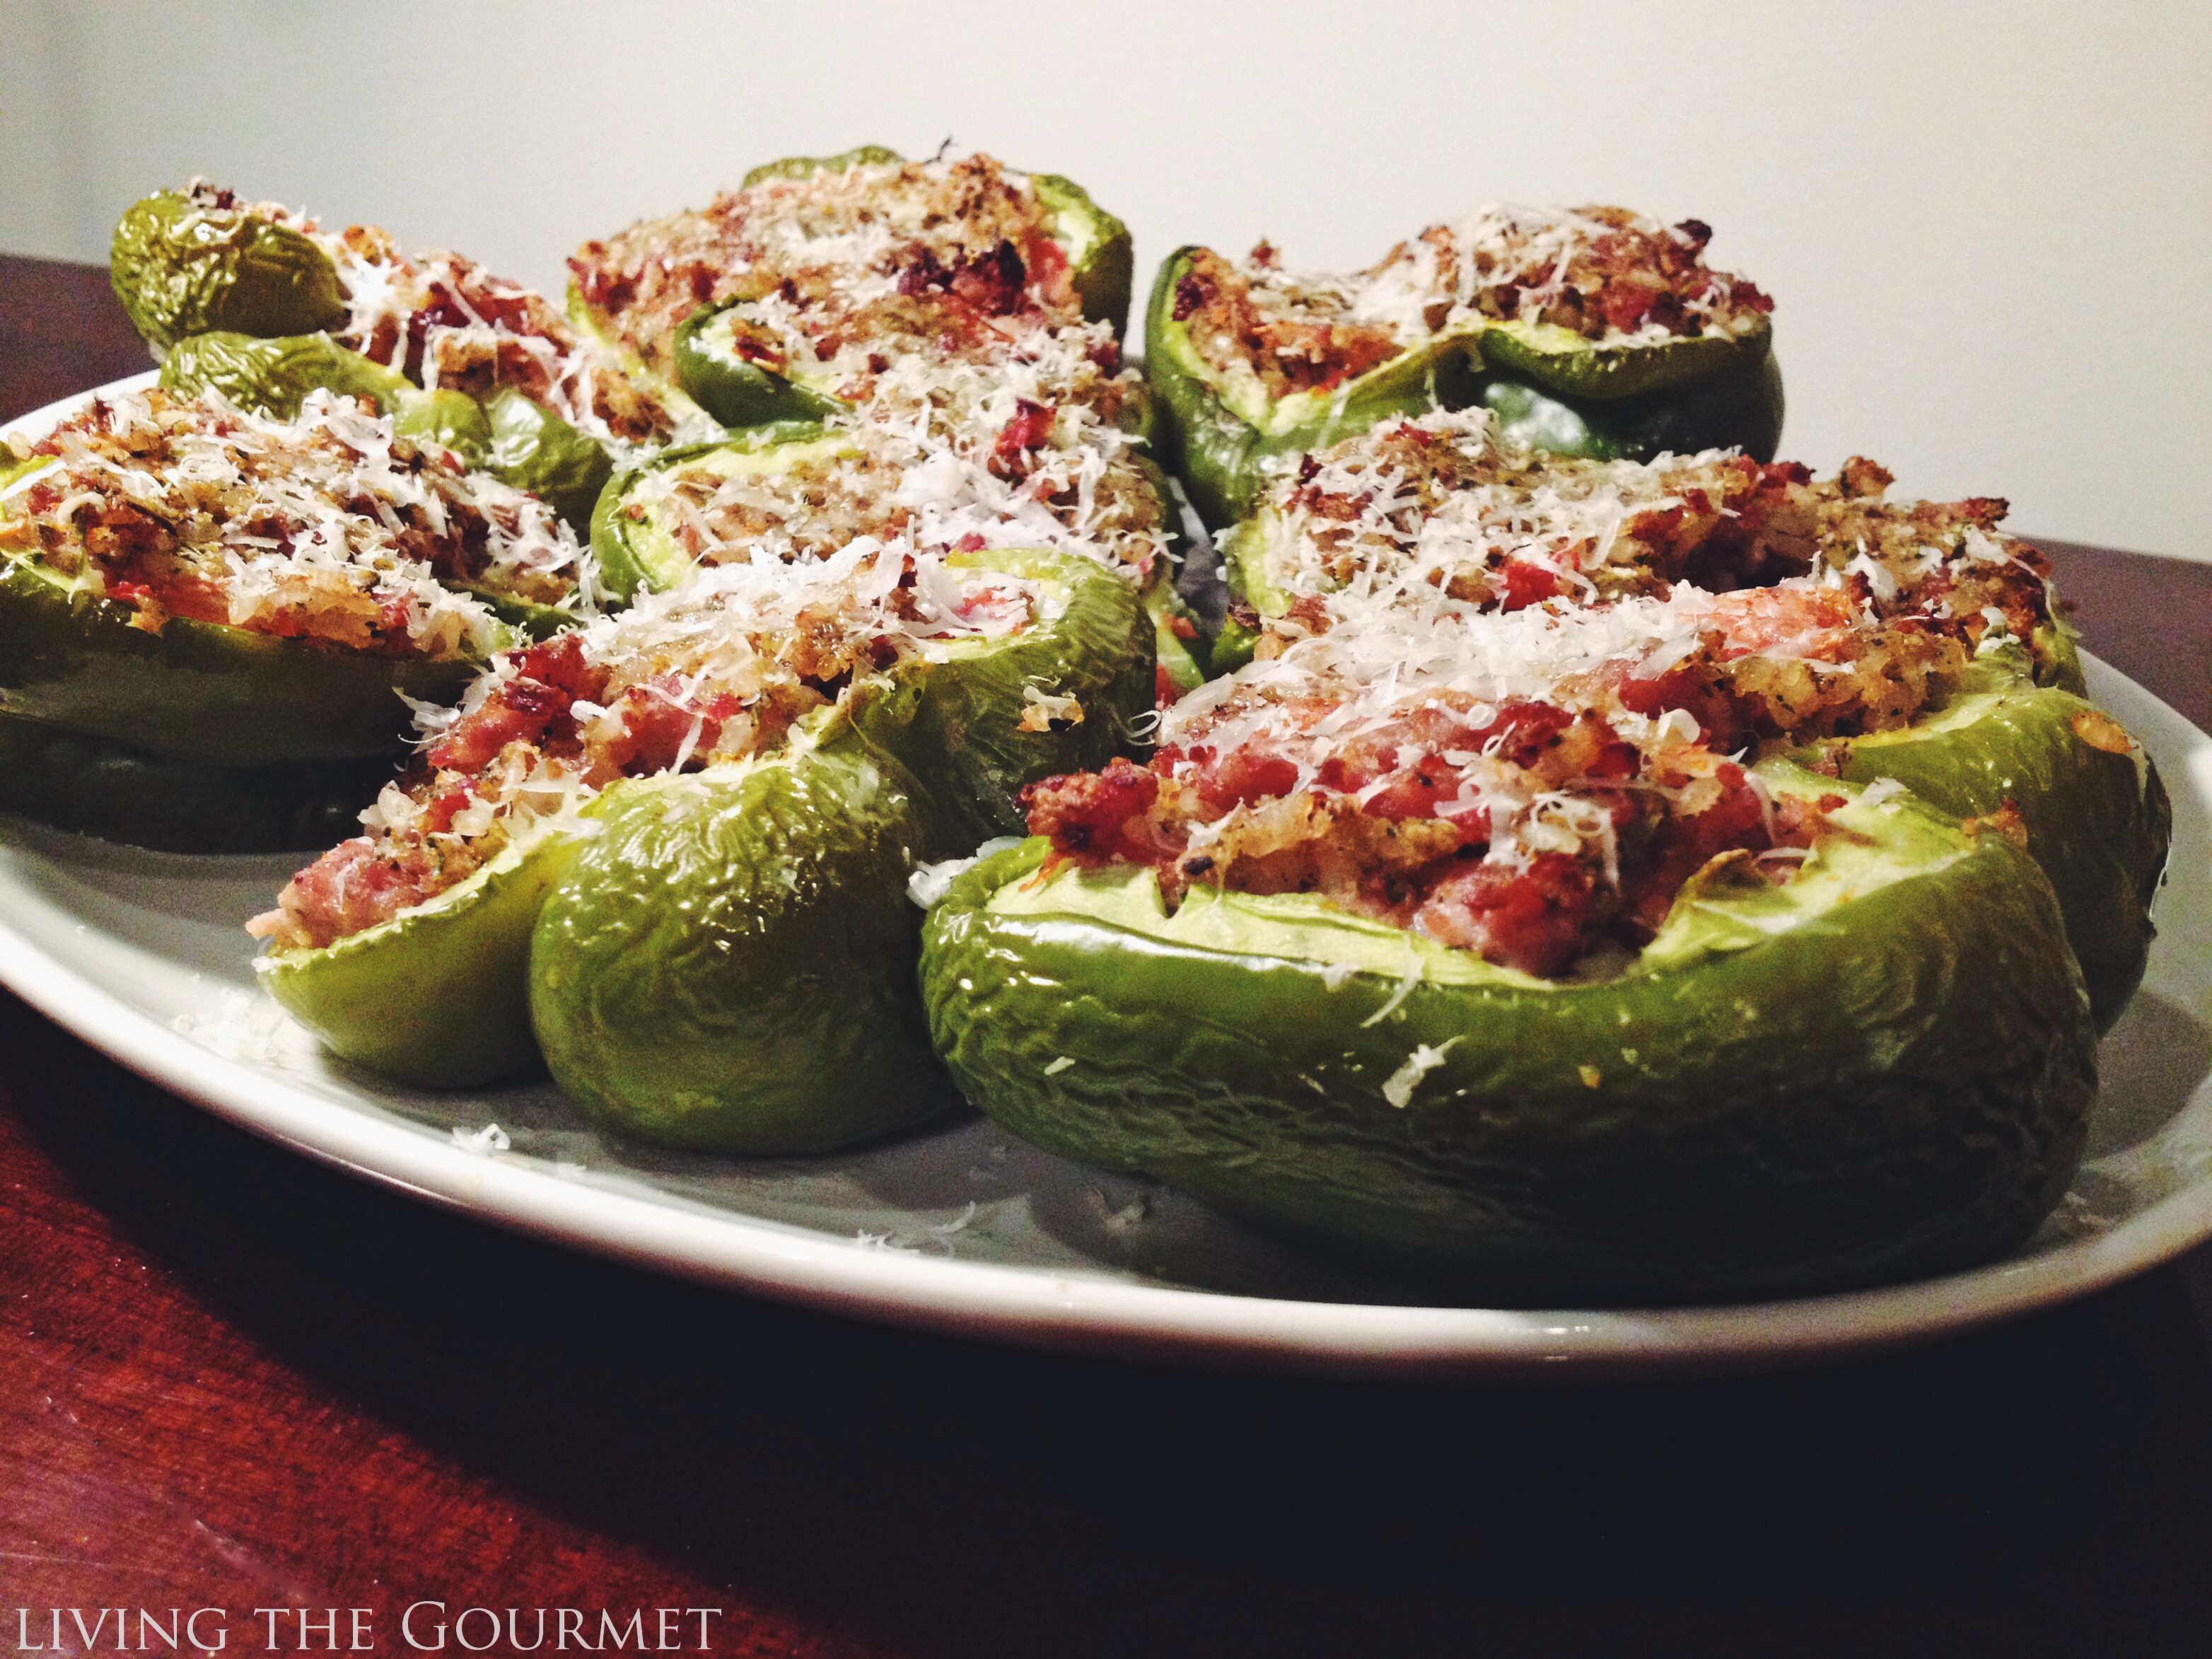 Living the Gourmet: Stuffed Peppers